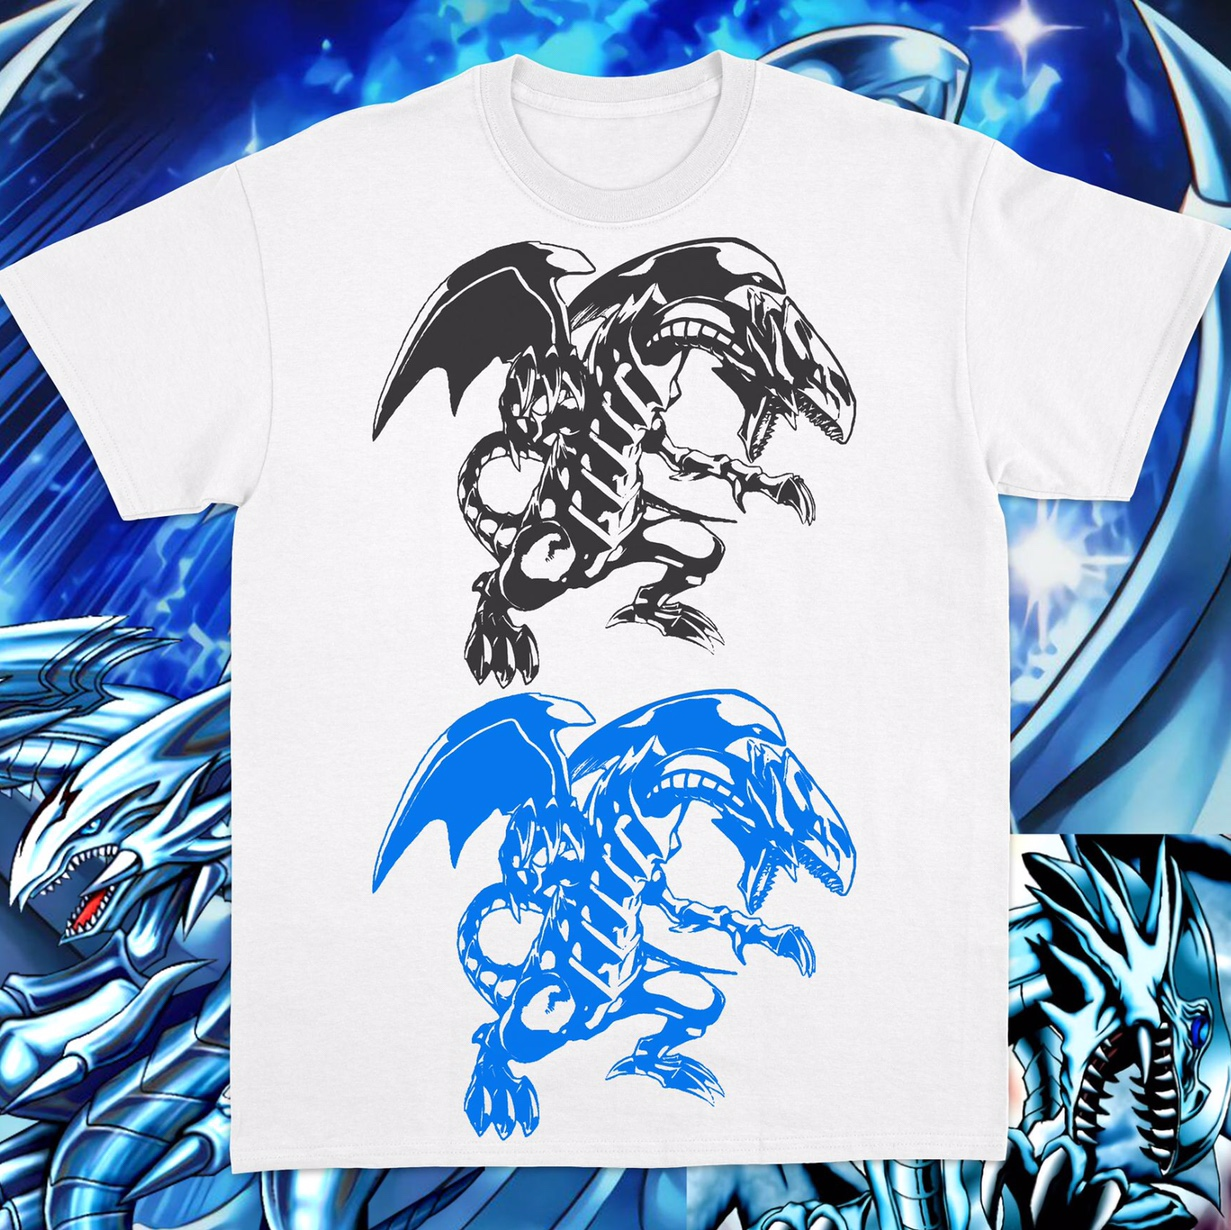 Product Image 1 - (PRE ORDER) YUGIOH BLUE EYES